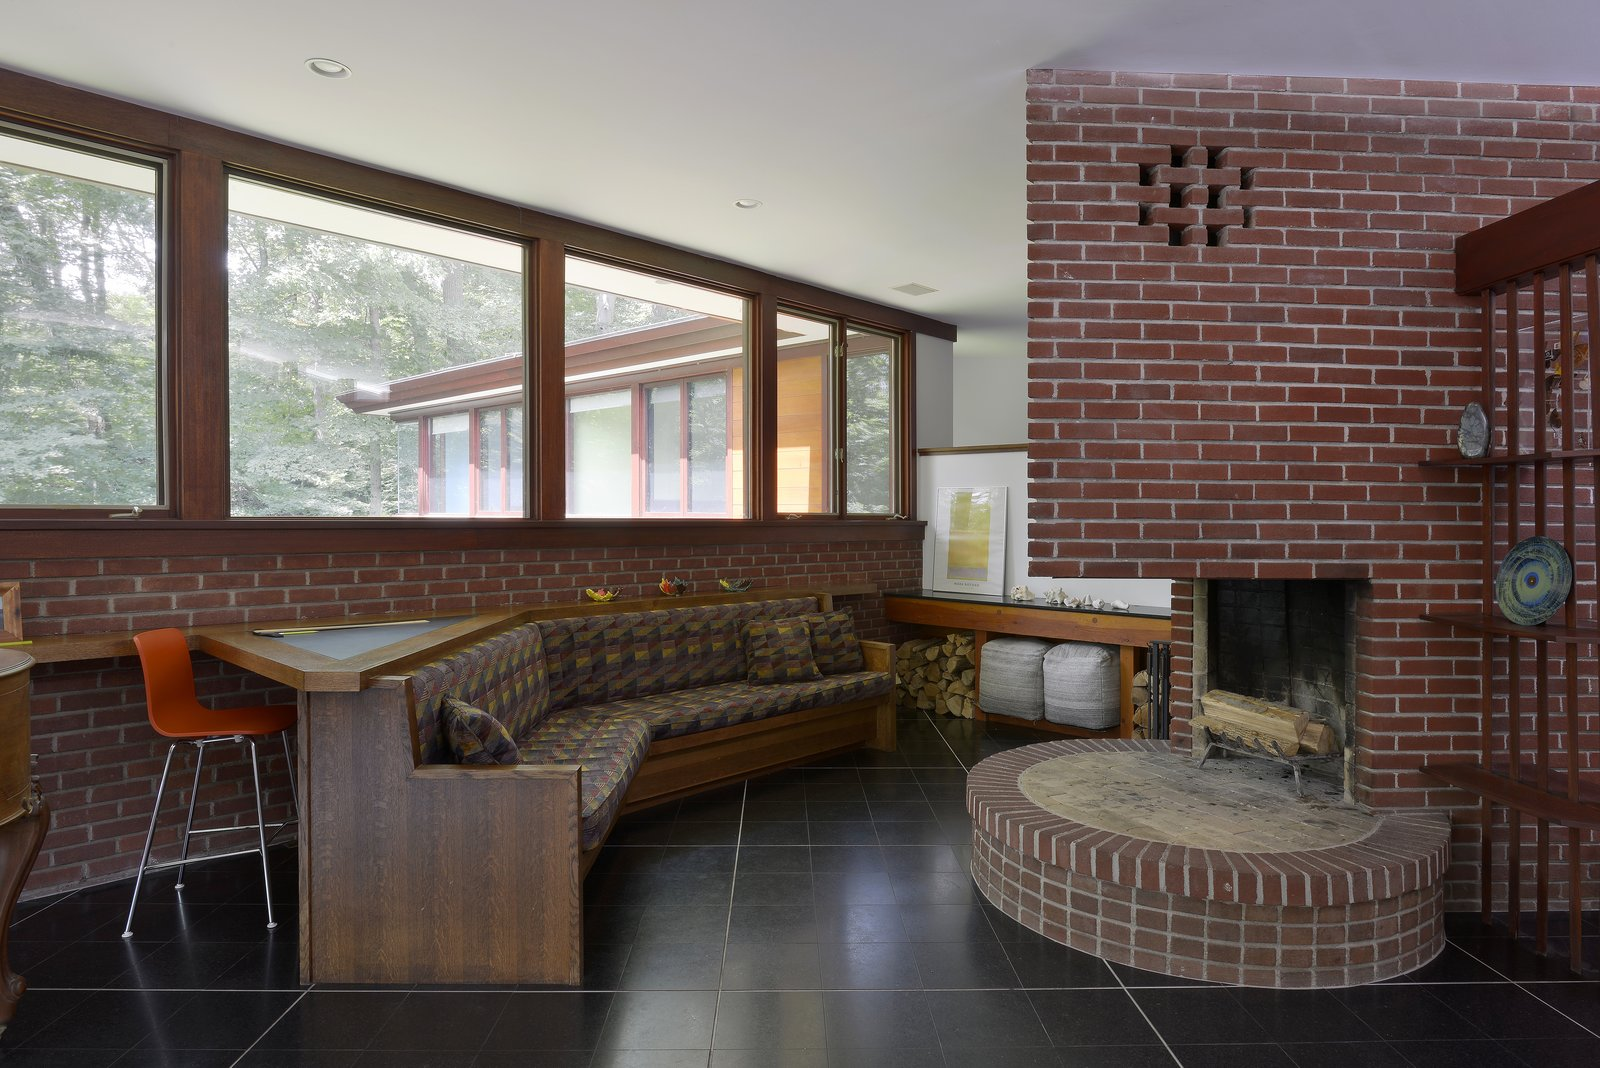 Living, Bench, Standard Layout, Chair, and Desk  Best Living Desk Bench Photos from A Renovated Usonian Gem Shows Off Modern Organic Architecture